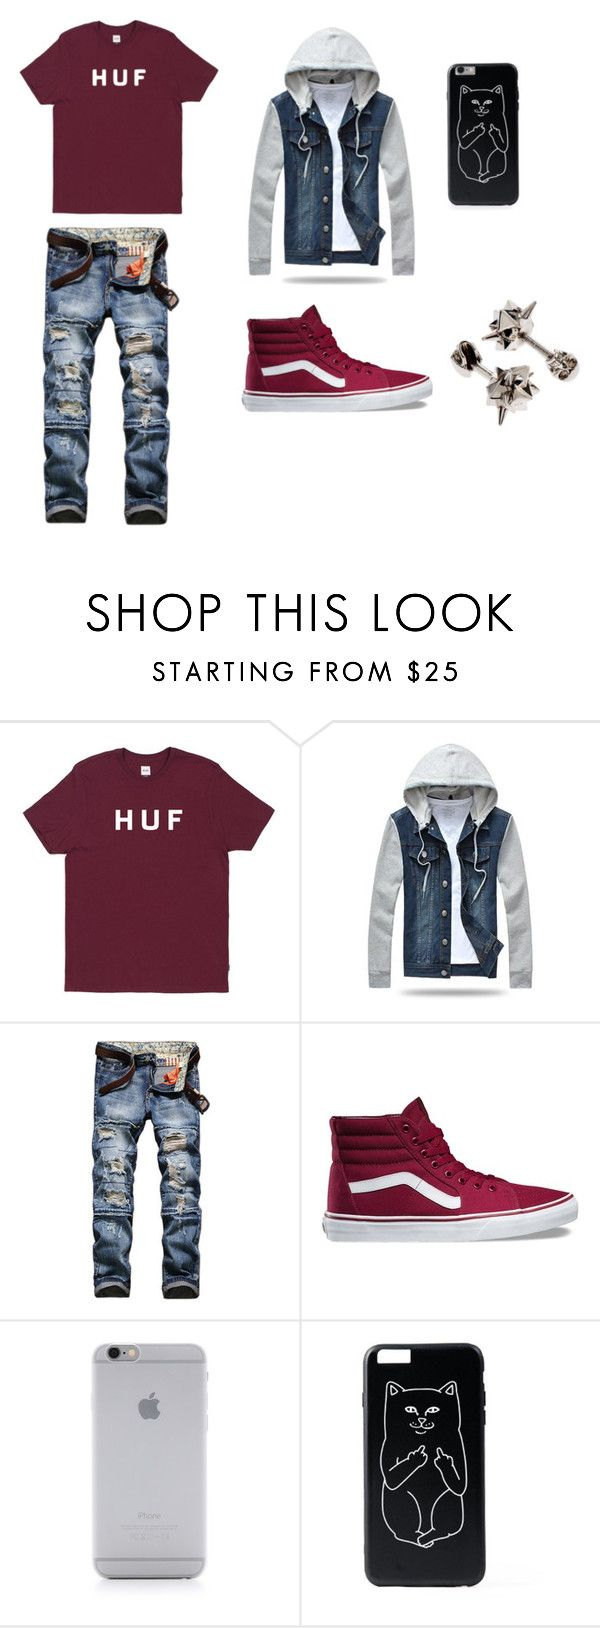 """""""SHANNON'S STYLE FOR BOYS 2"""" by tomboy-1-lol ❤ liked on Polyvore featuring HUF, Vans, Native Union, Alexander McQueen, men's fashion and menswear"""